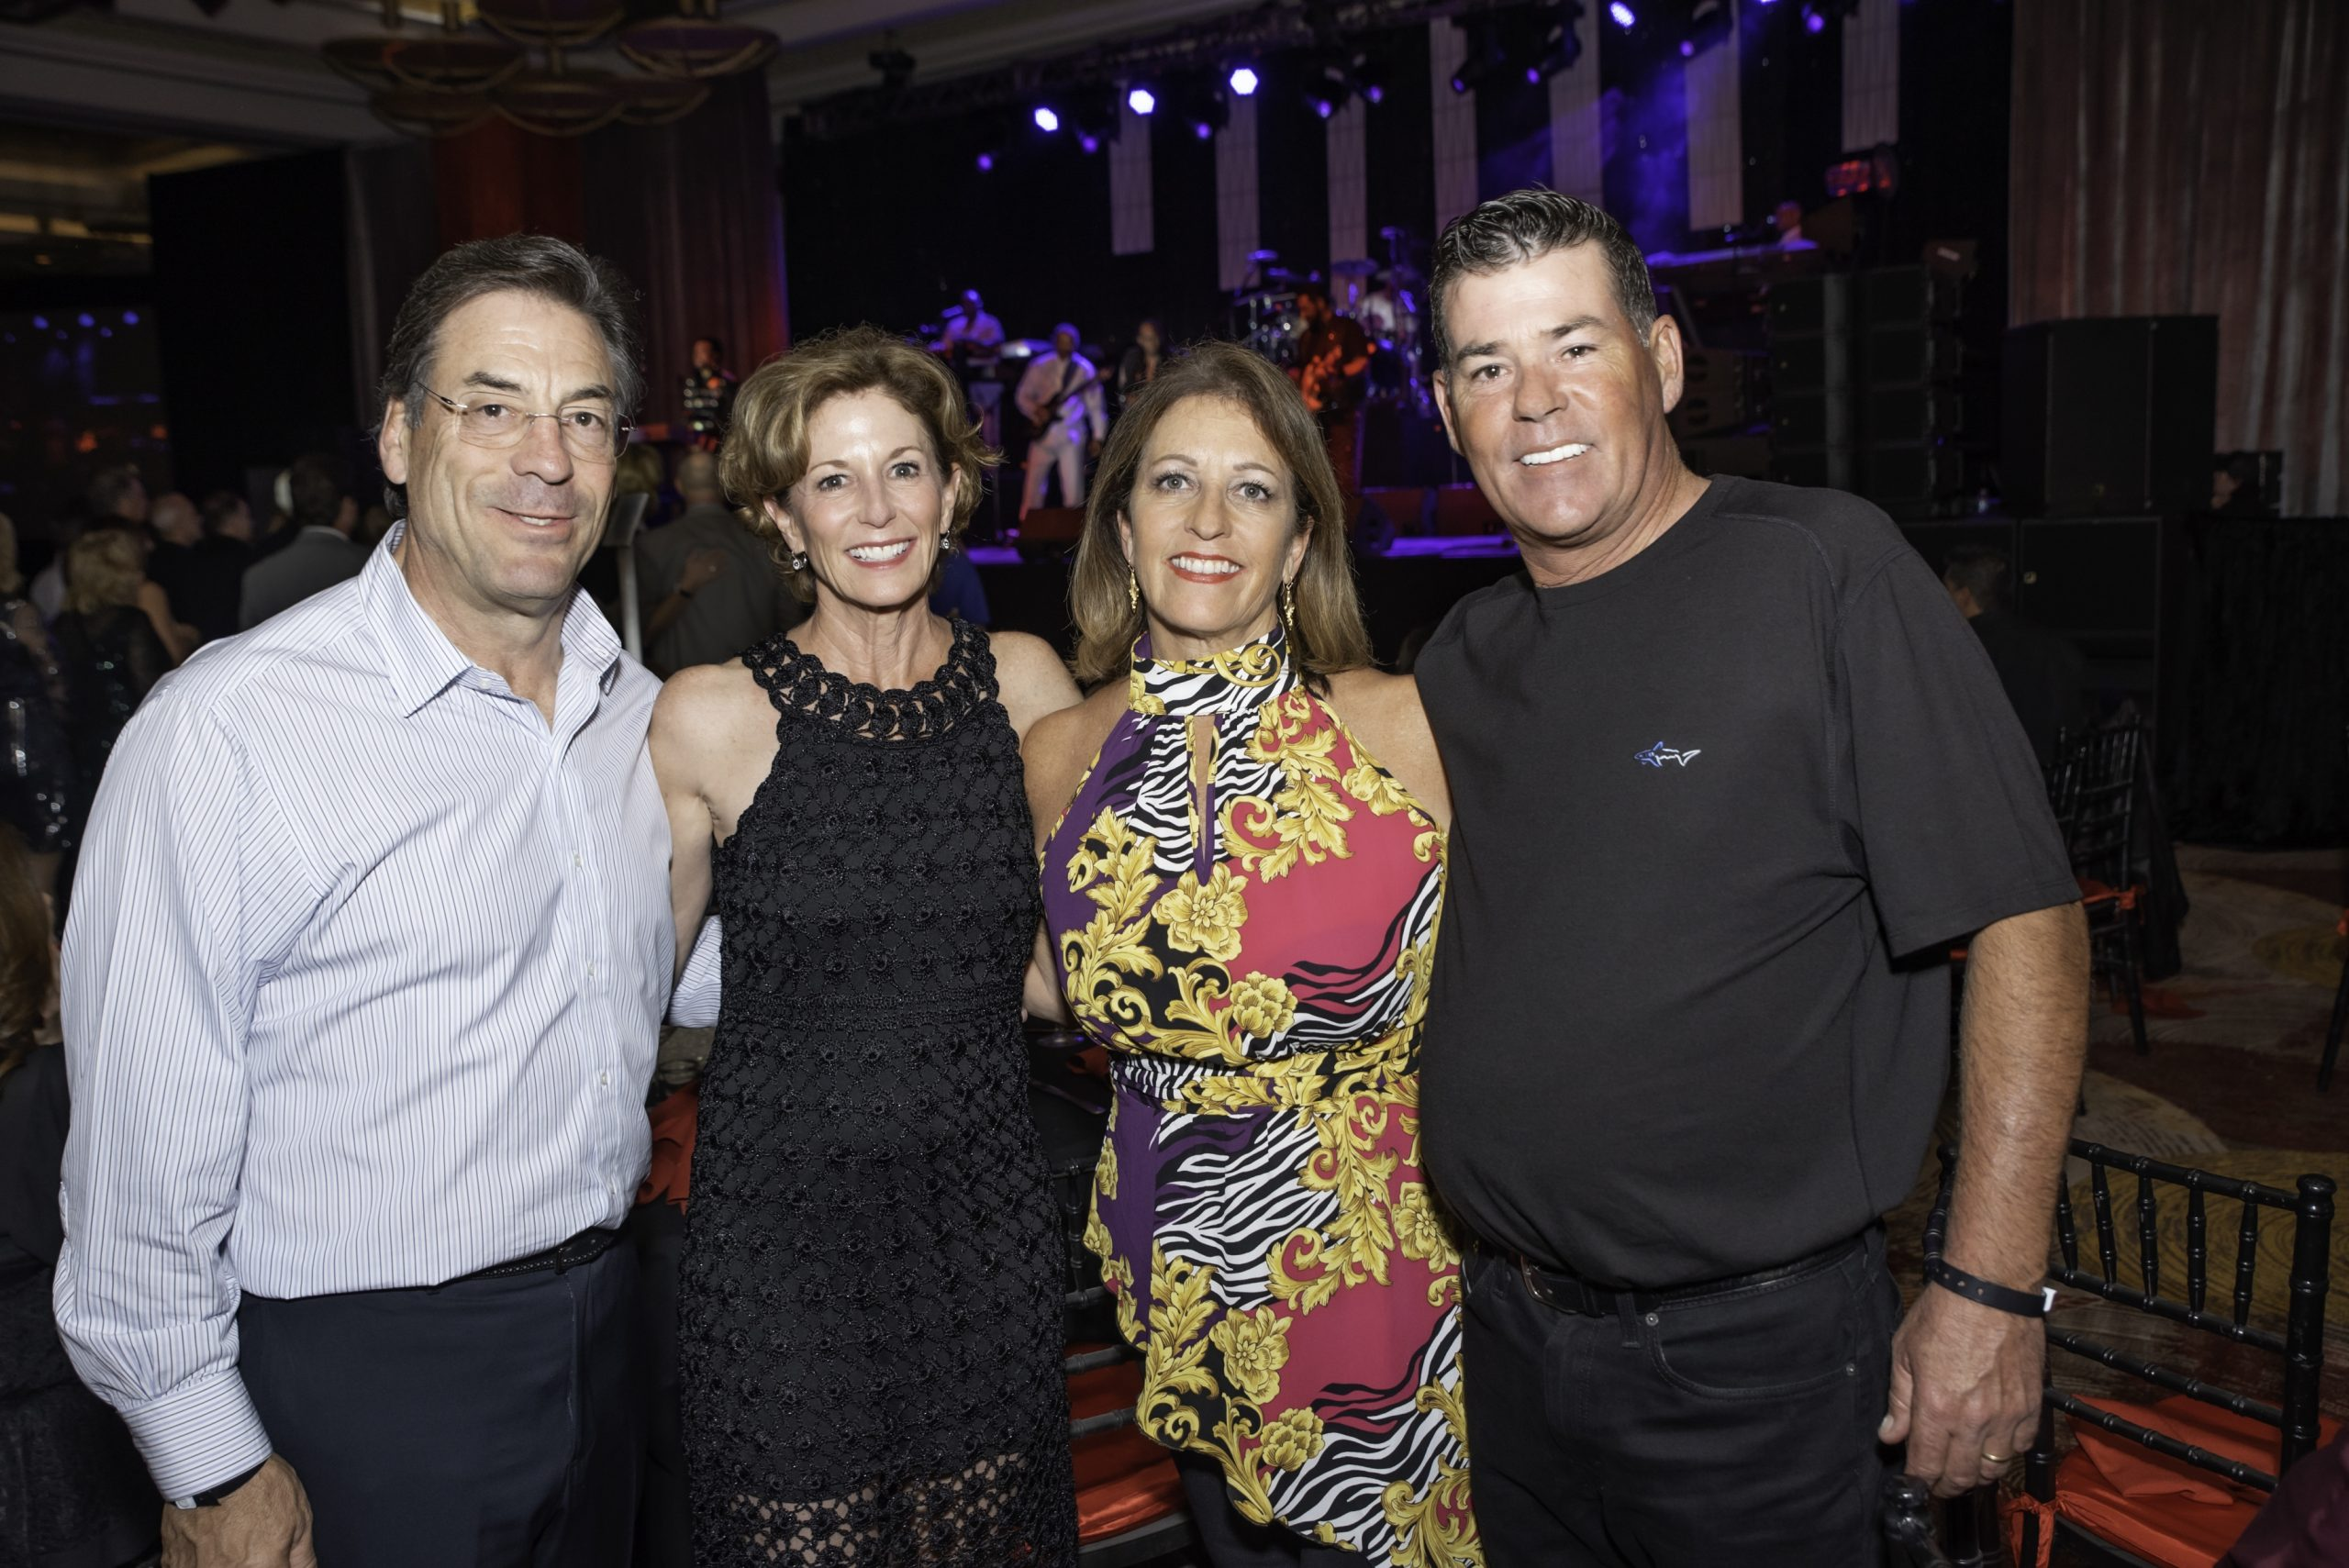 Chris & Jayne Malfitano with Laura Sylvester & Andy Trunk